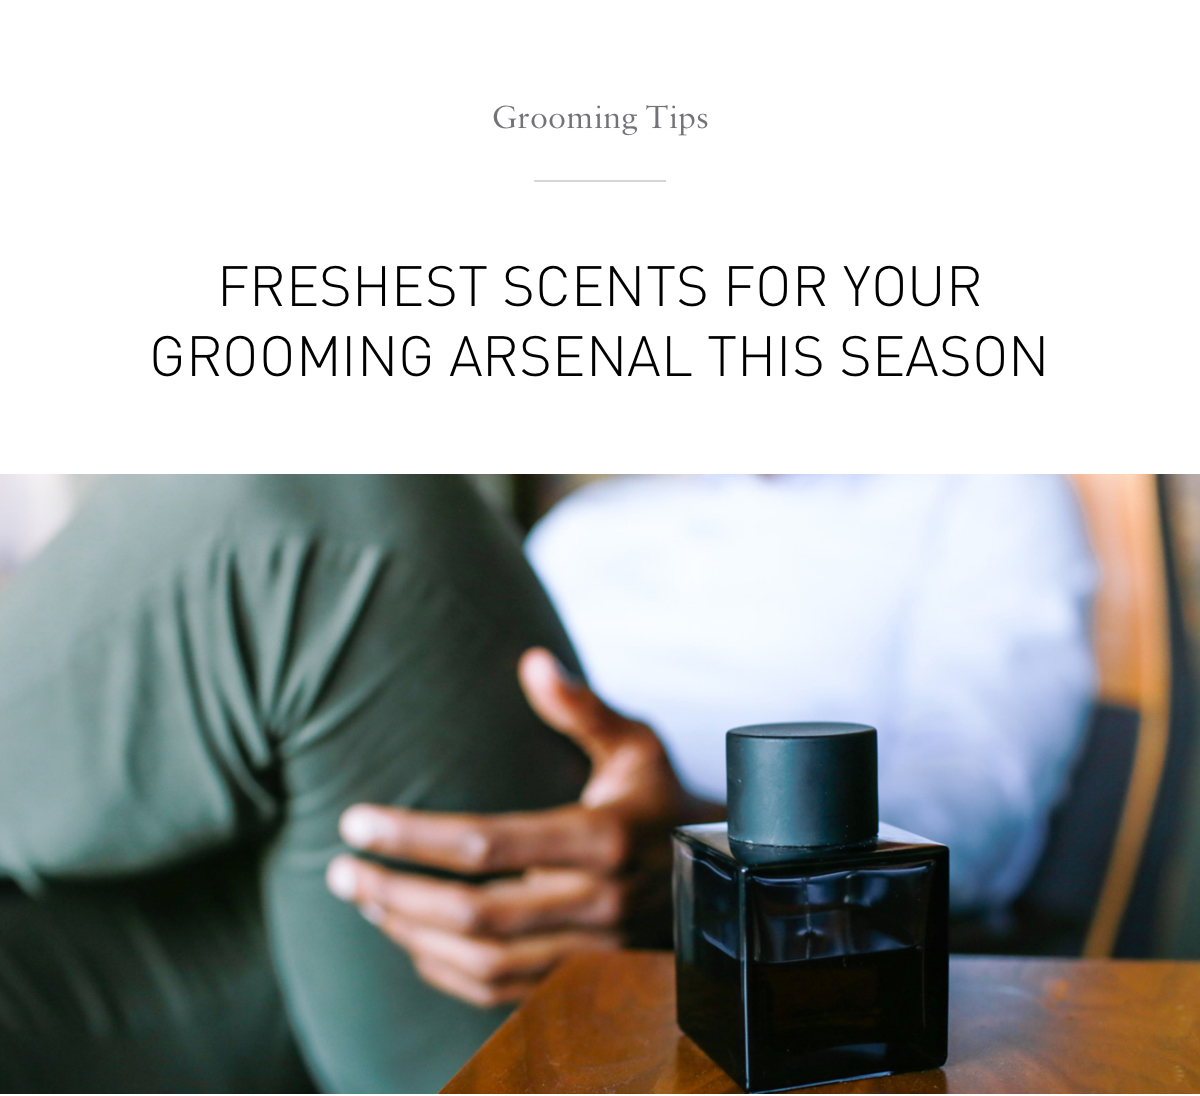 Grooming Tips: Freshest Scents For Your Grooming Arsenal This Season